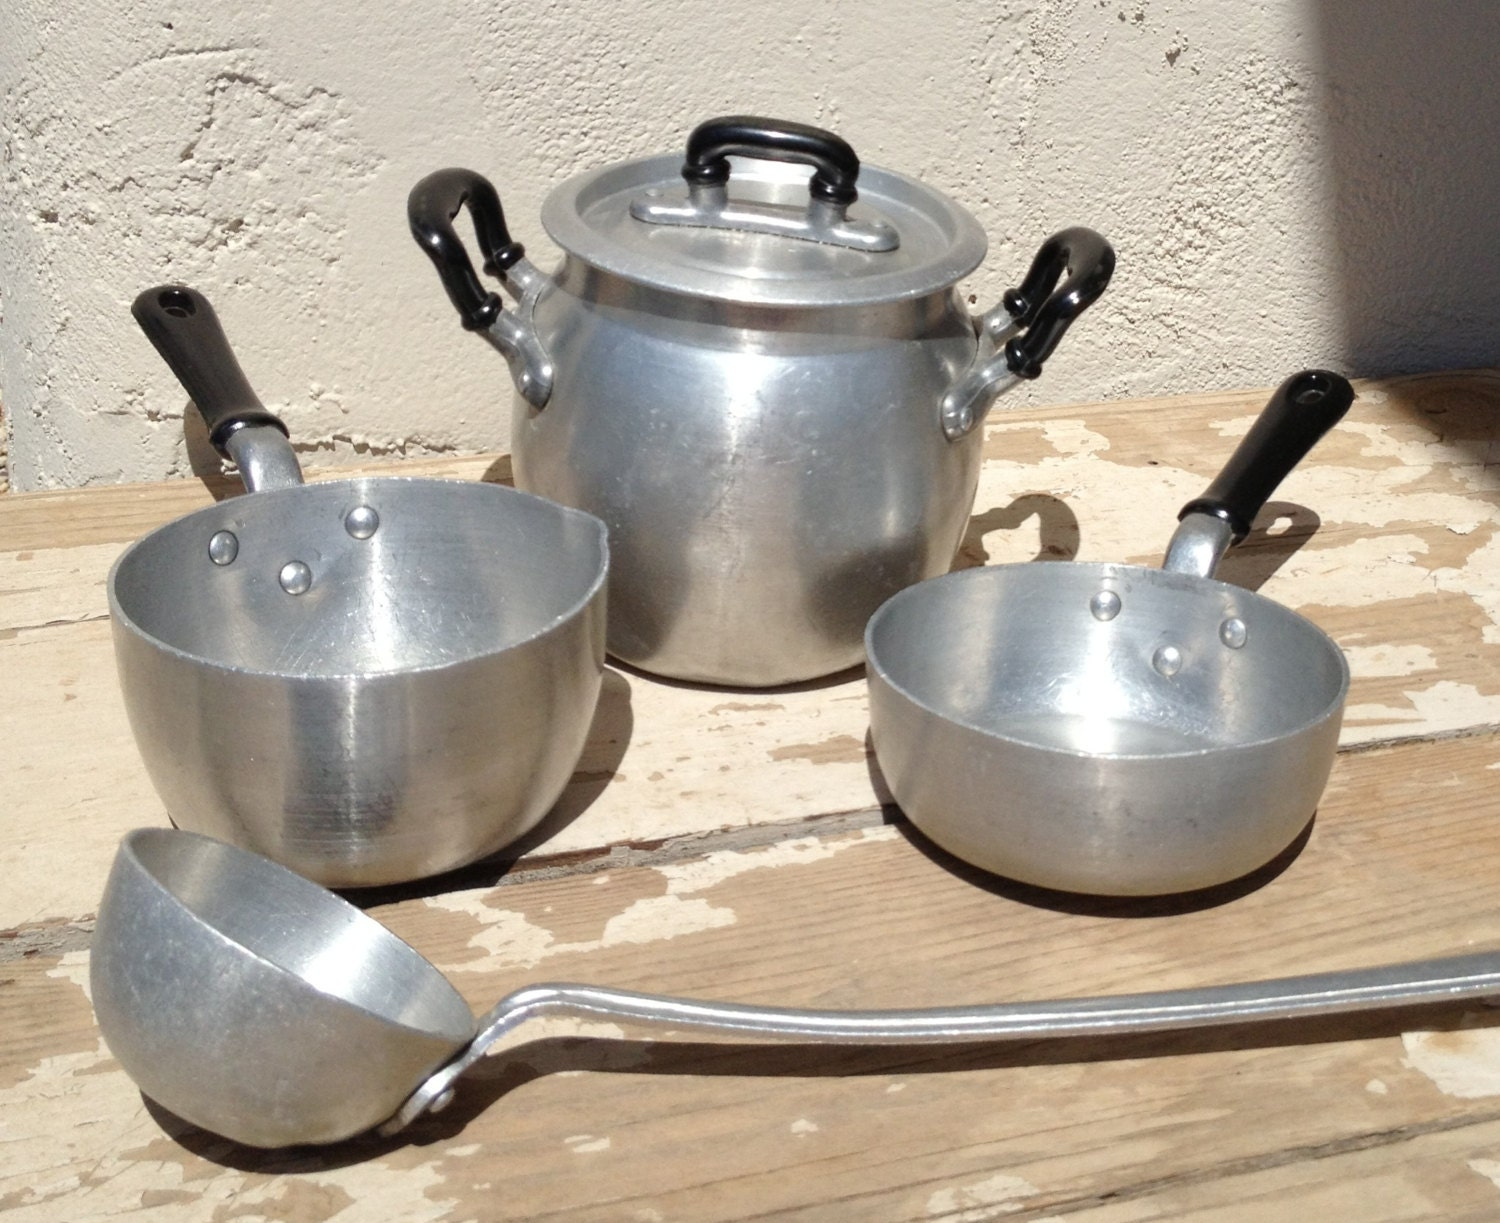 Vintage Pots and Pans Childrens Cookware Creative Playthings